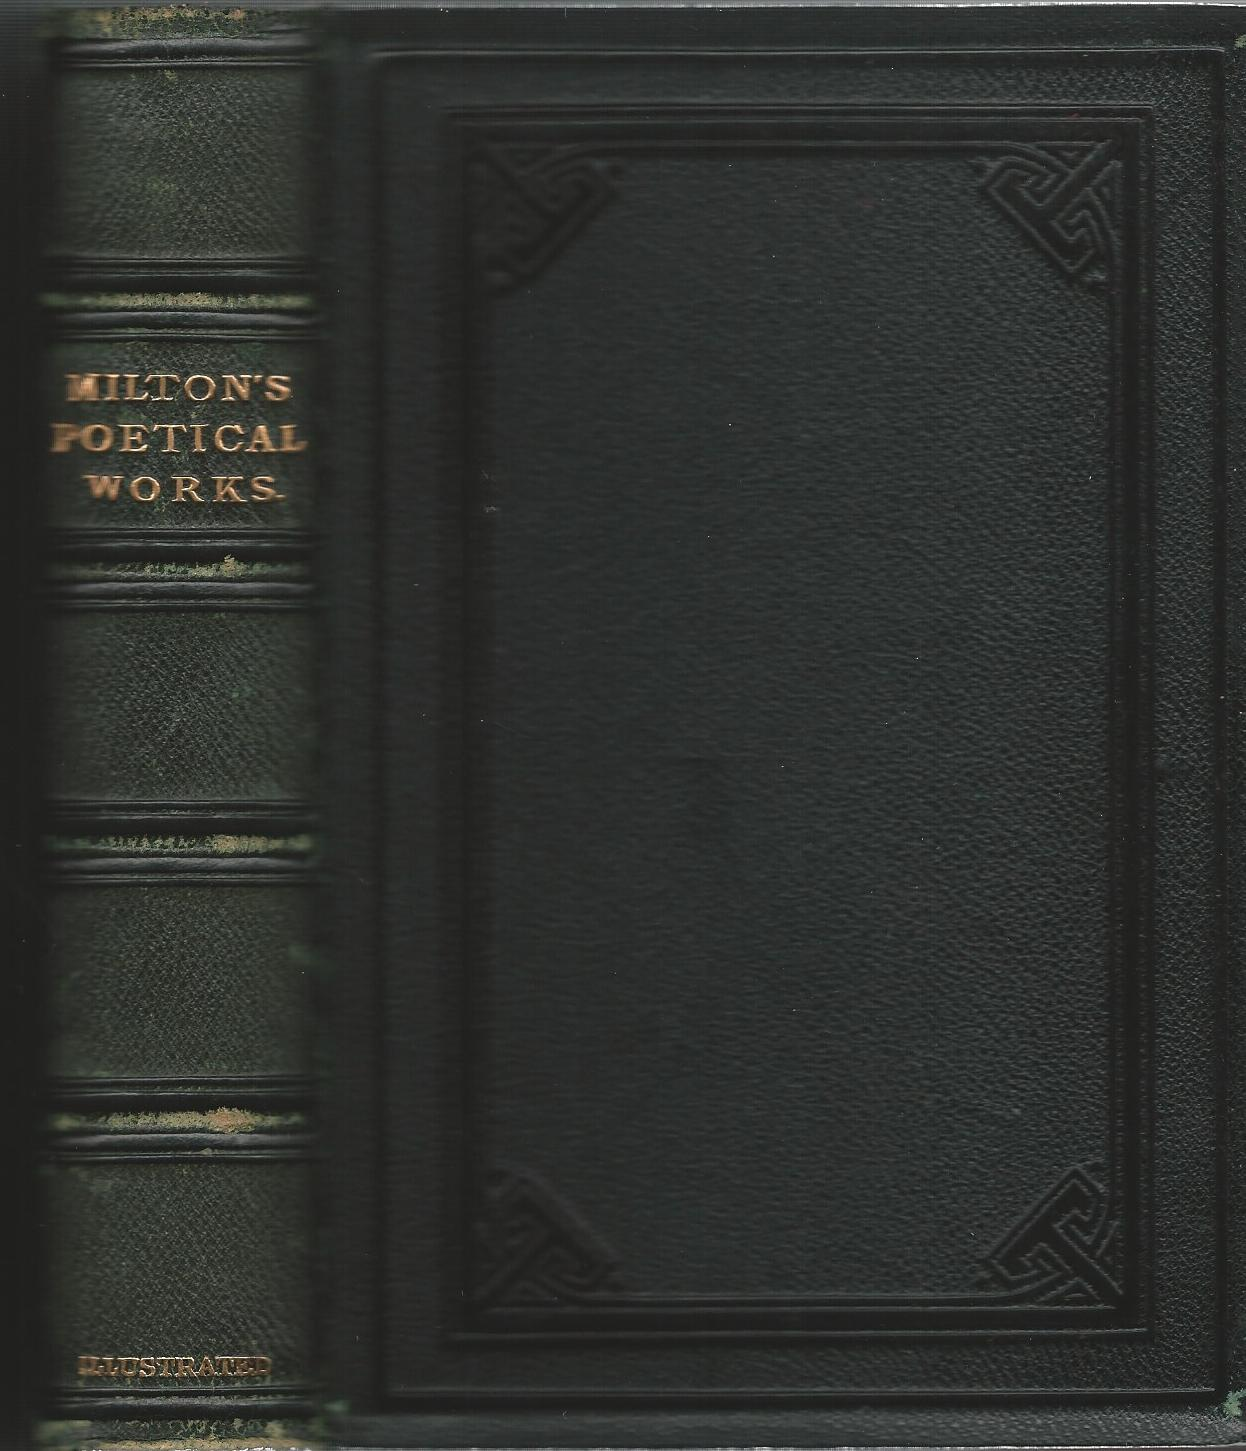 Image for The Poetical Works of John Milton Reprinted from the Chandos Poets, with Memoir, Explanatory Notes, &c.